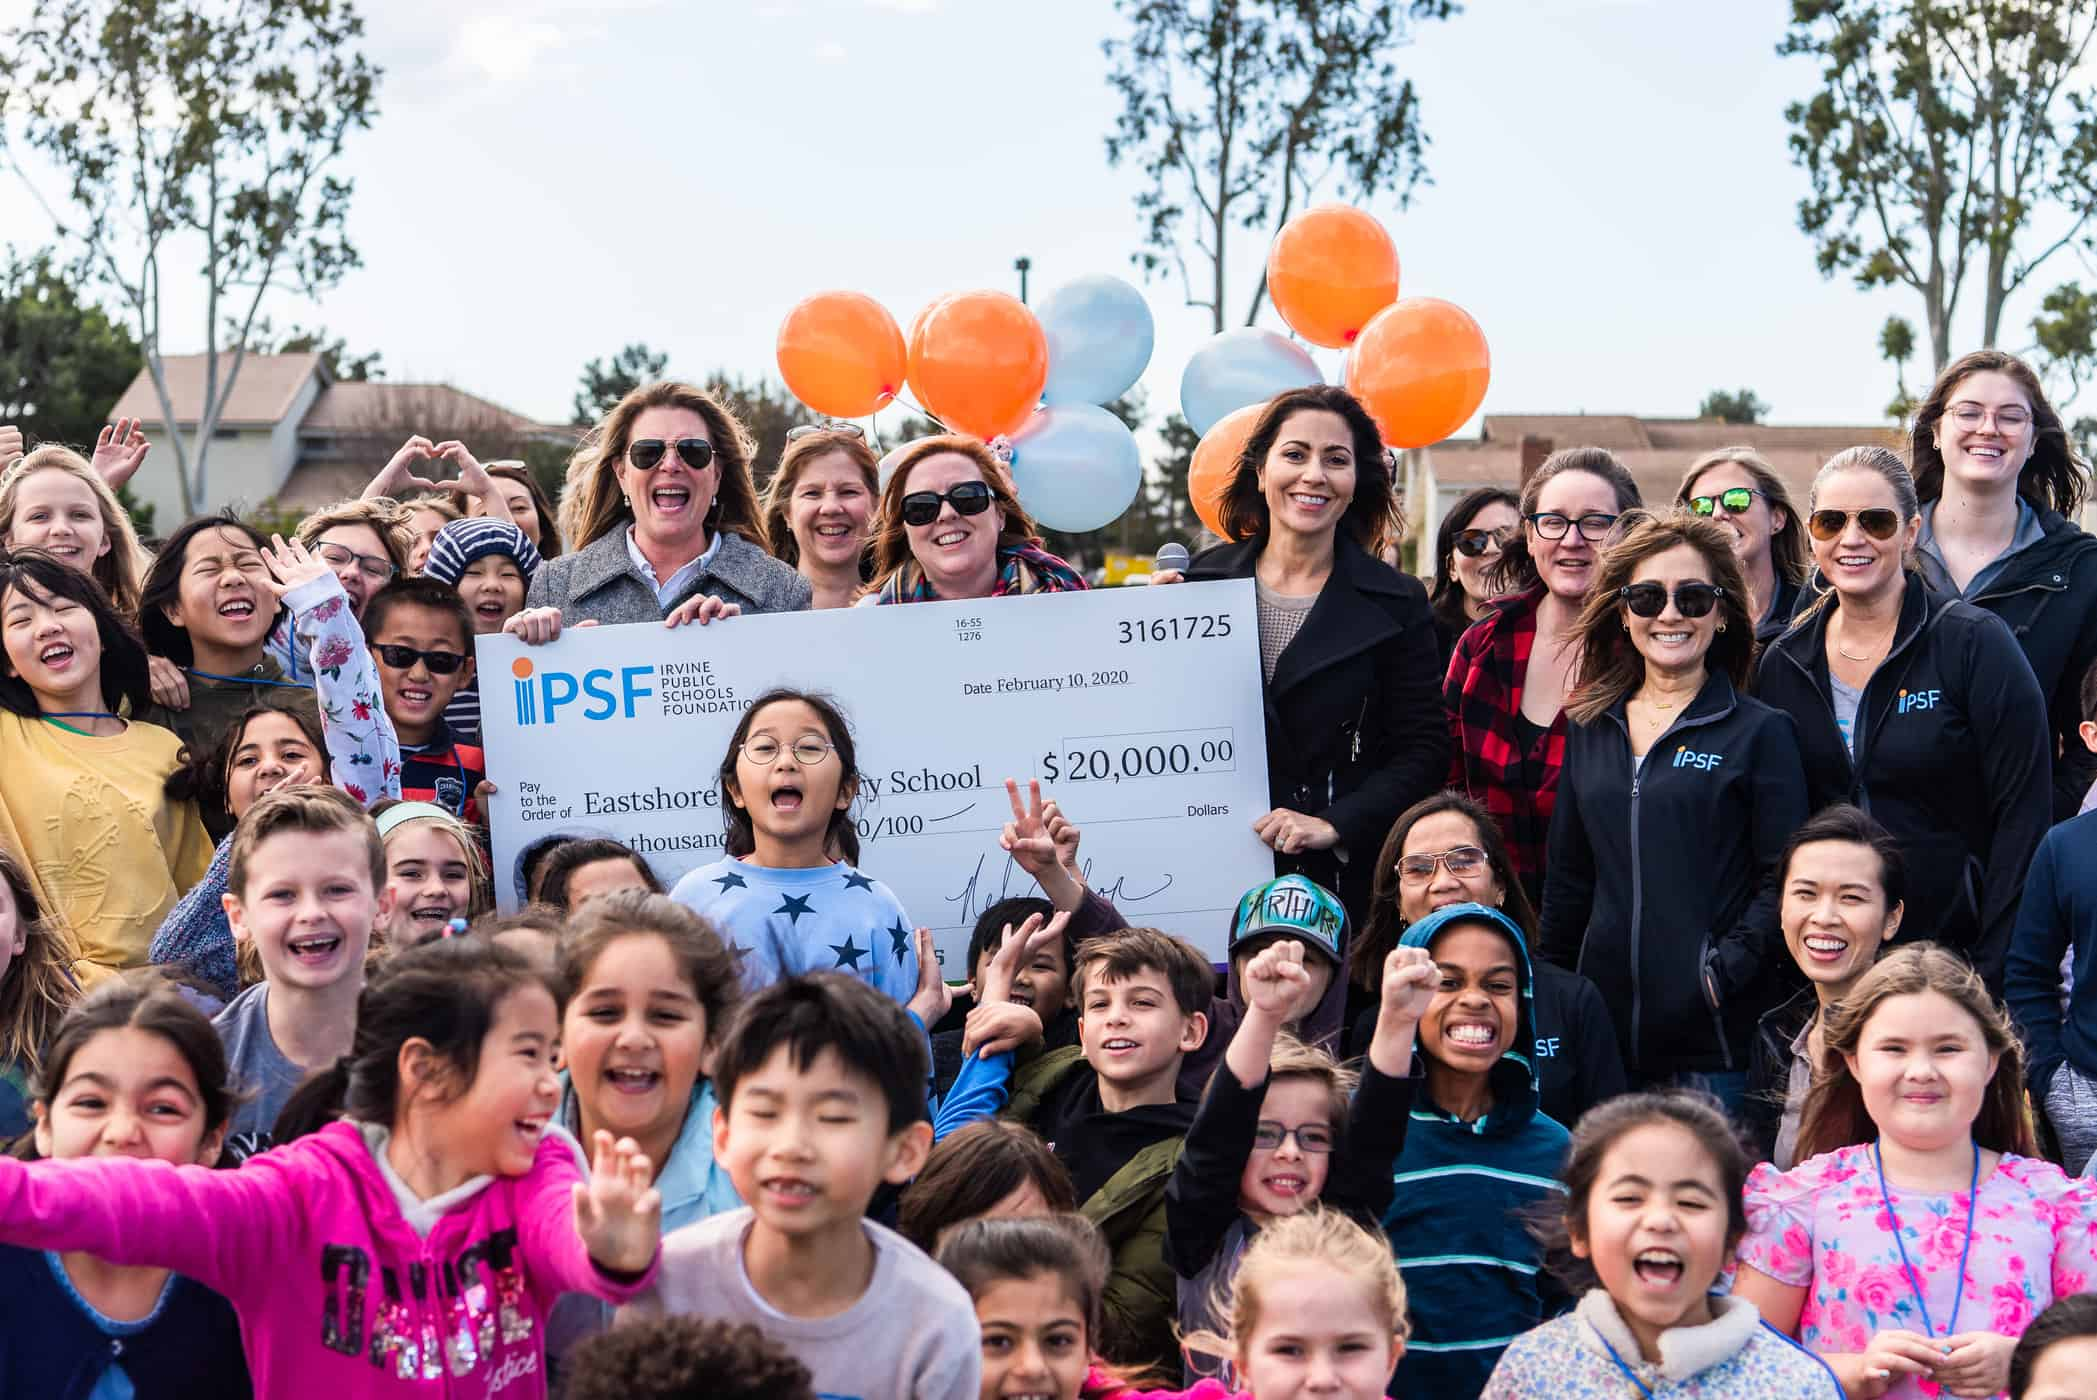 IPSF AWARDS OVER $200,000 IN INNOVATIVE GRANTS